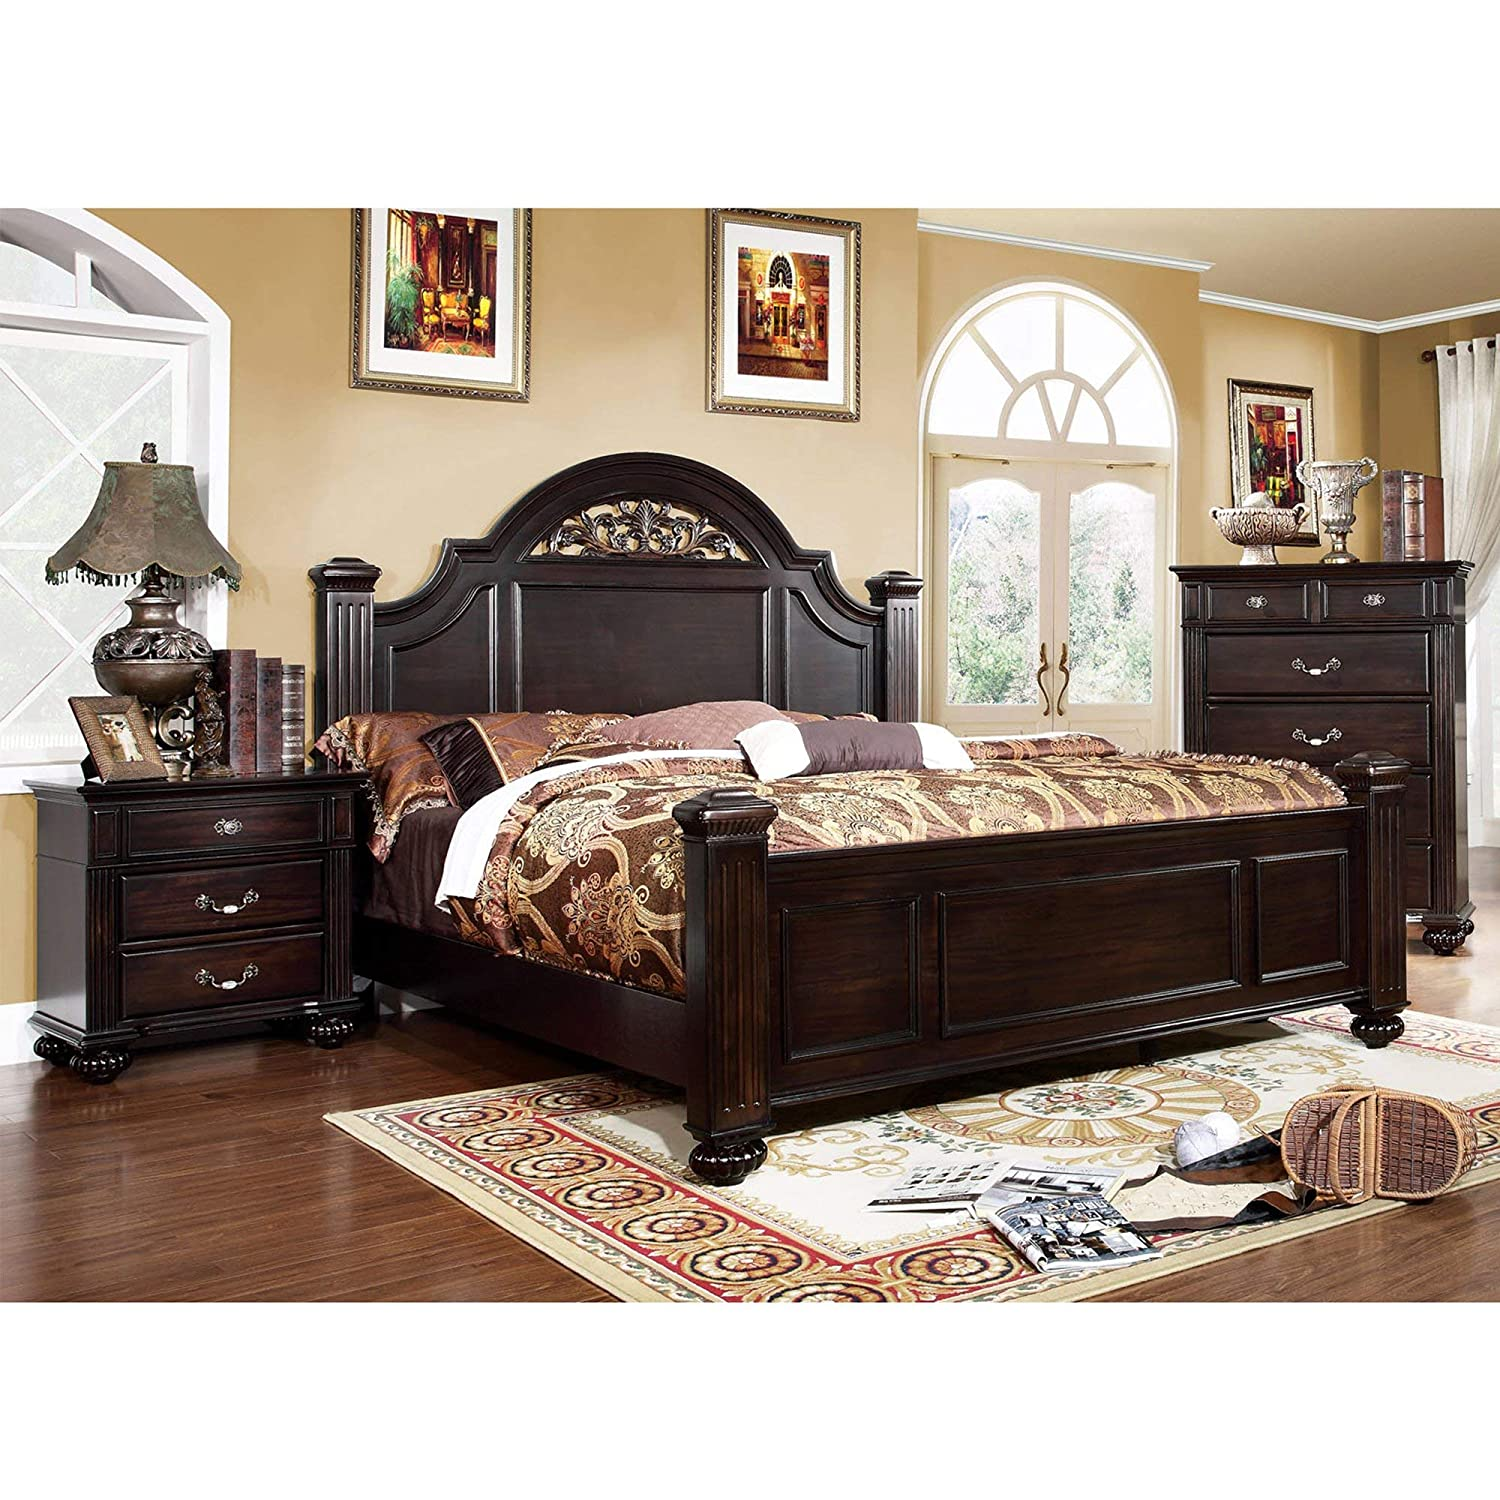 Amazon.com: Furniture of America Grande 3-Piece Dark Walnut ...